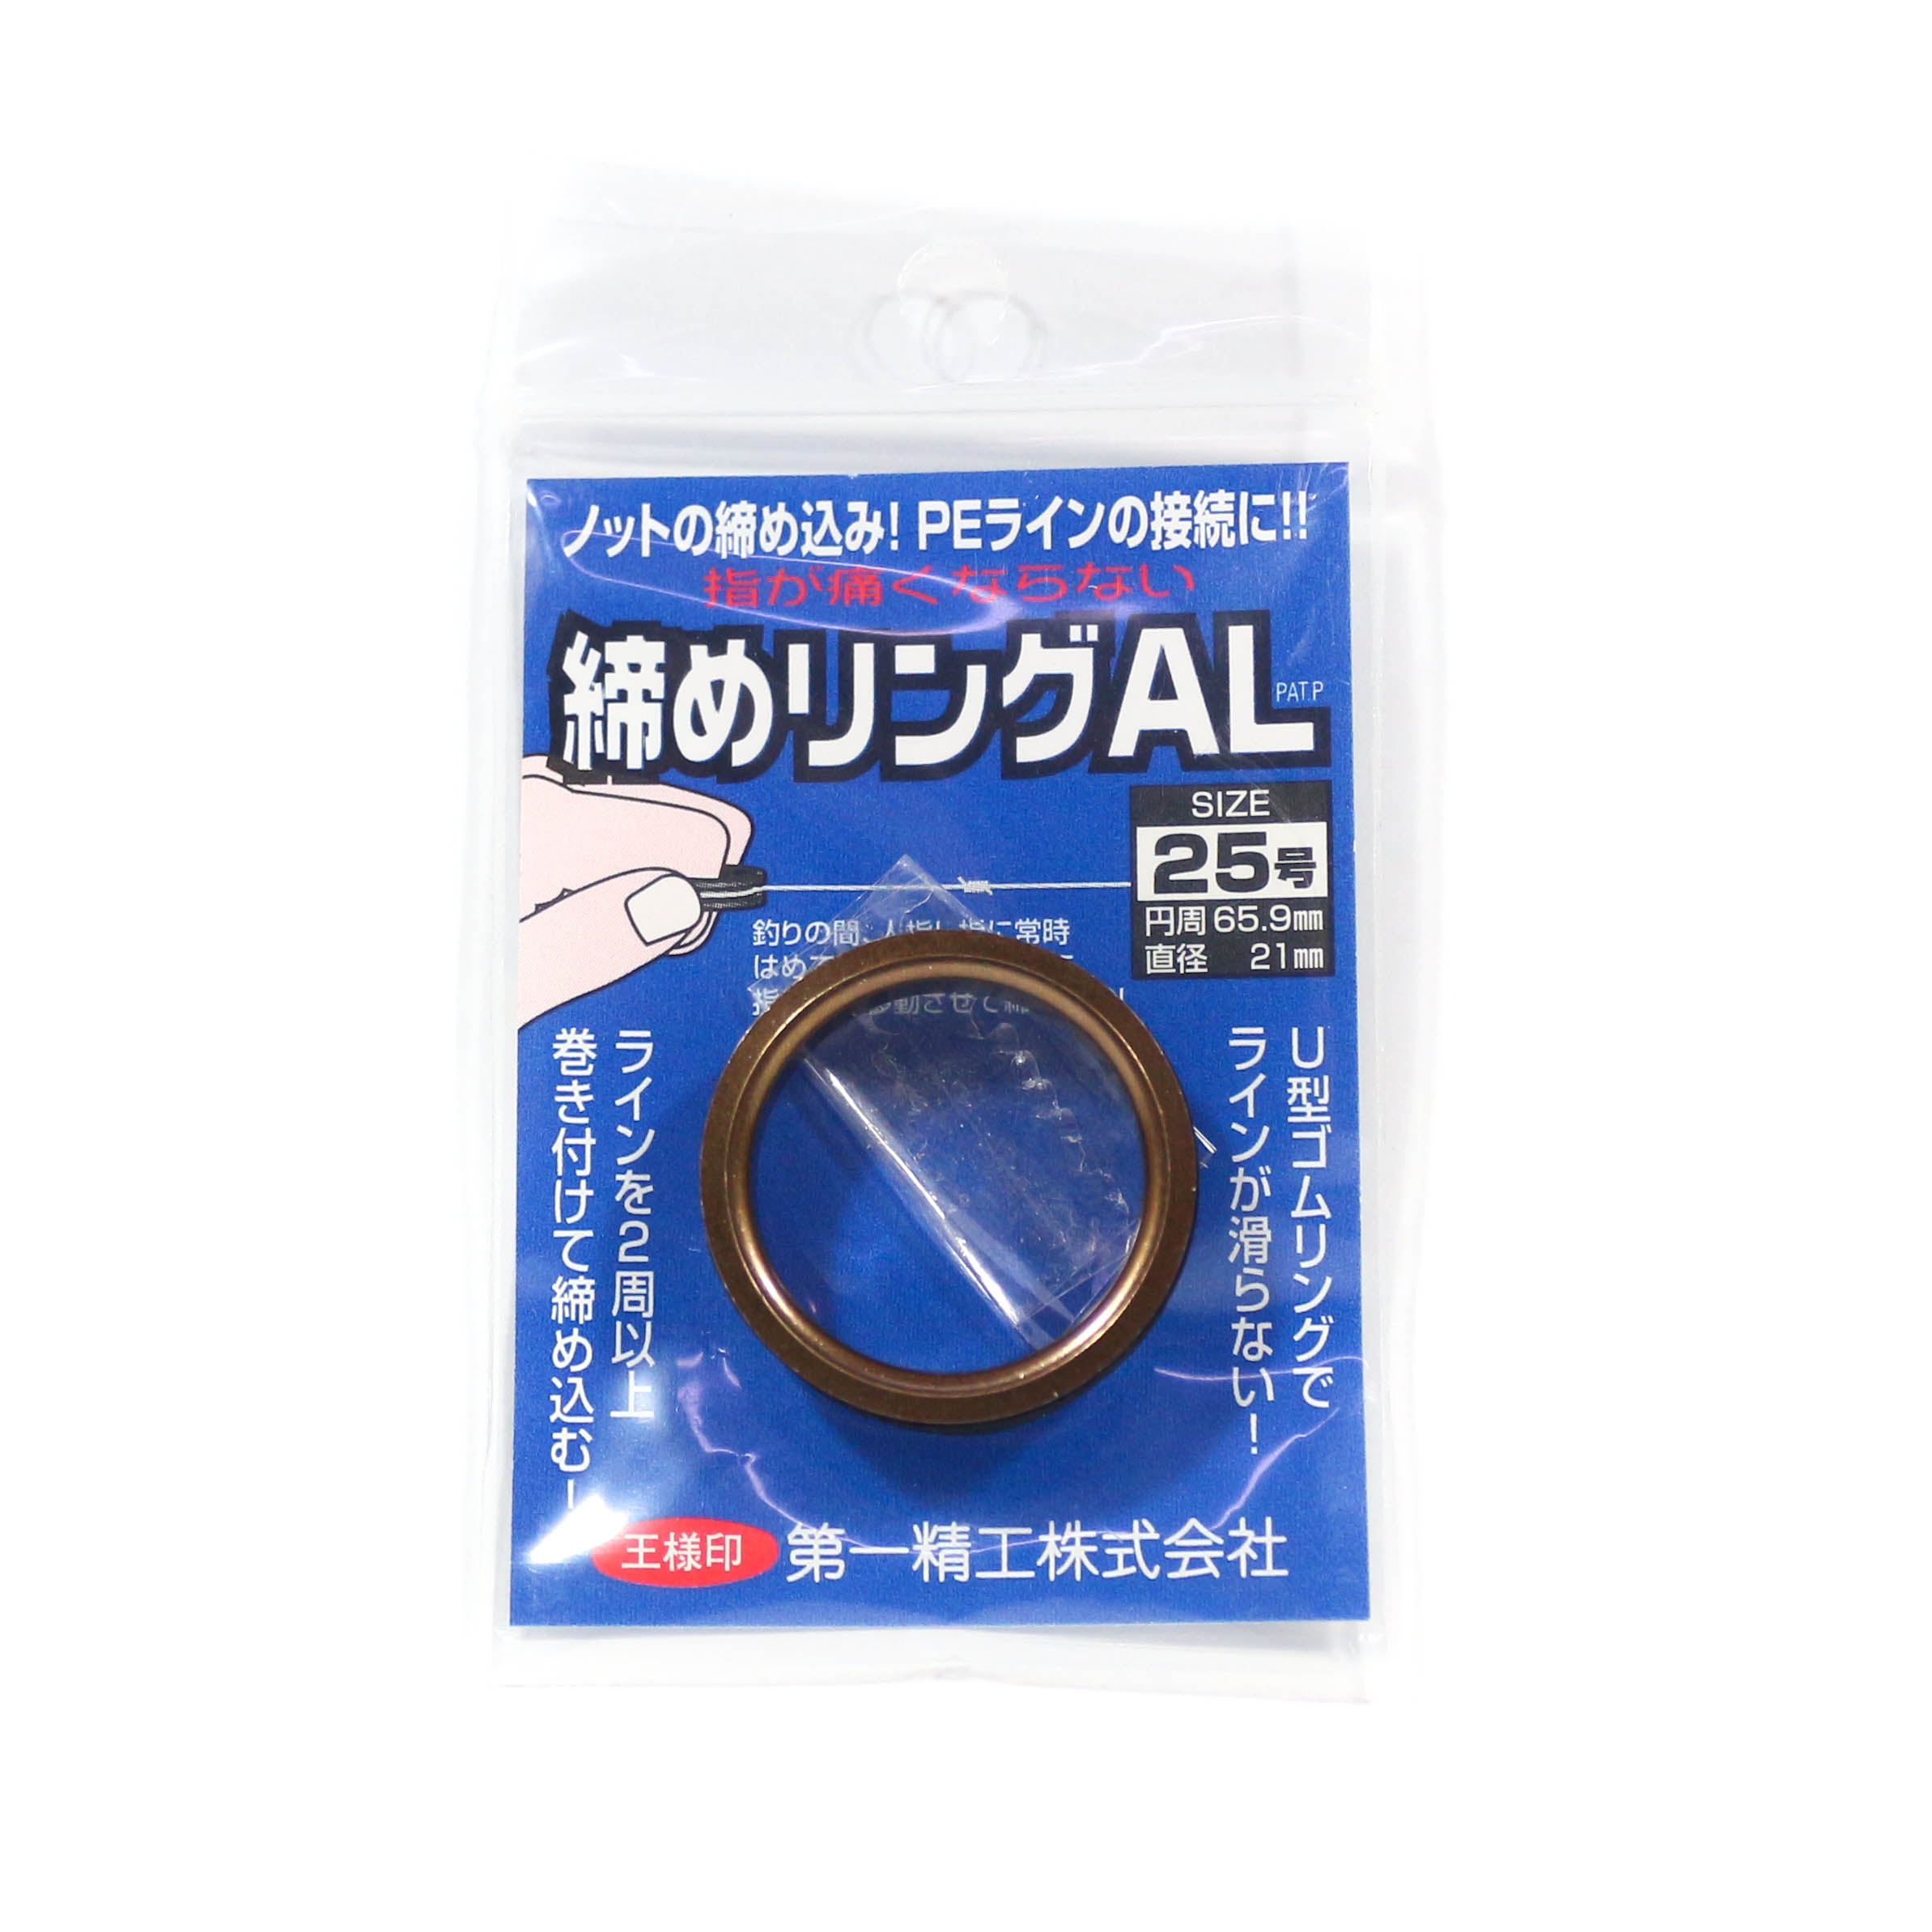 Daiichi #33291 AL 25 Knot Tightener Rubber Grip Ring 65.9mm Ti (2918)